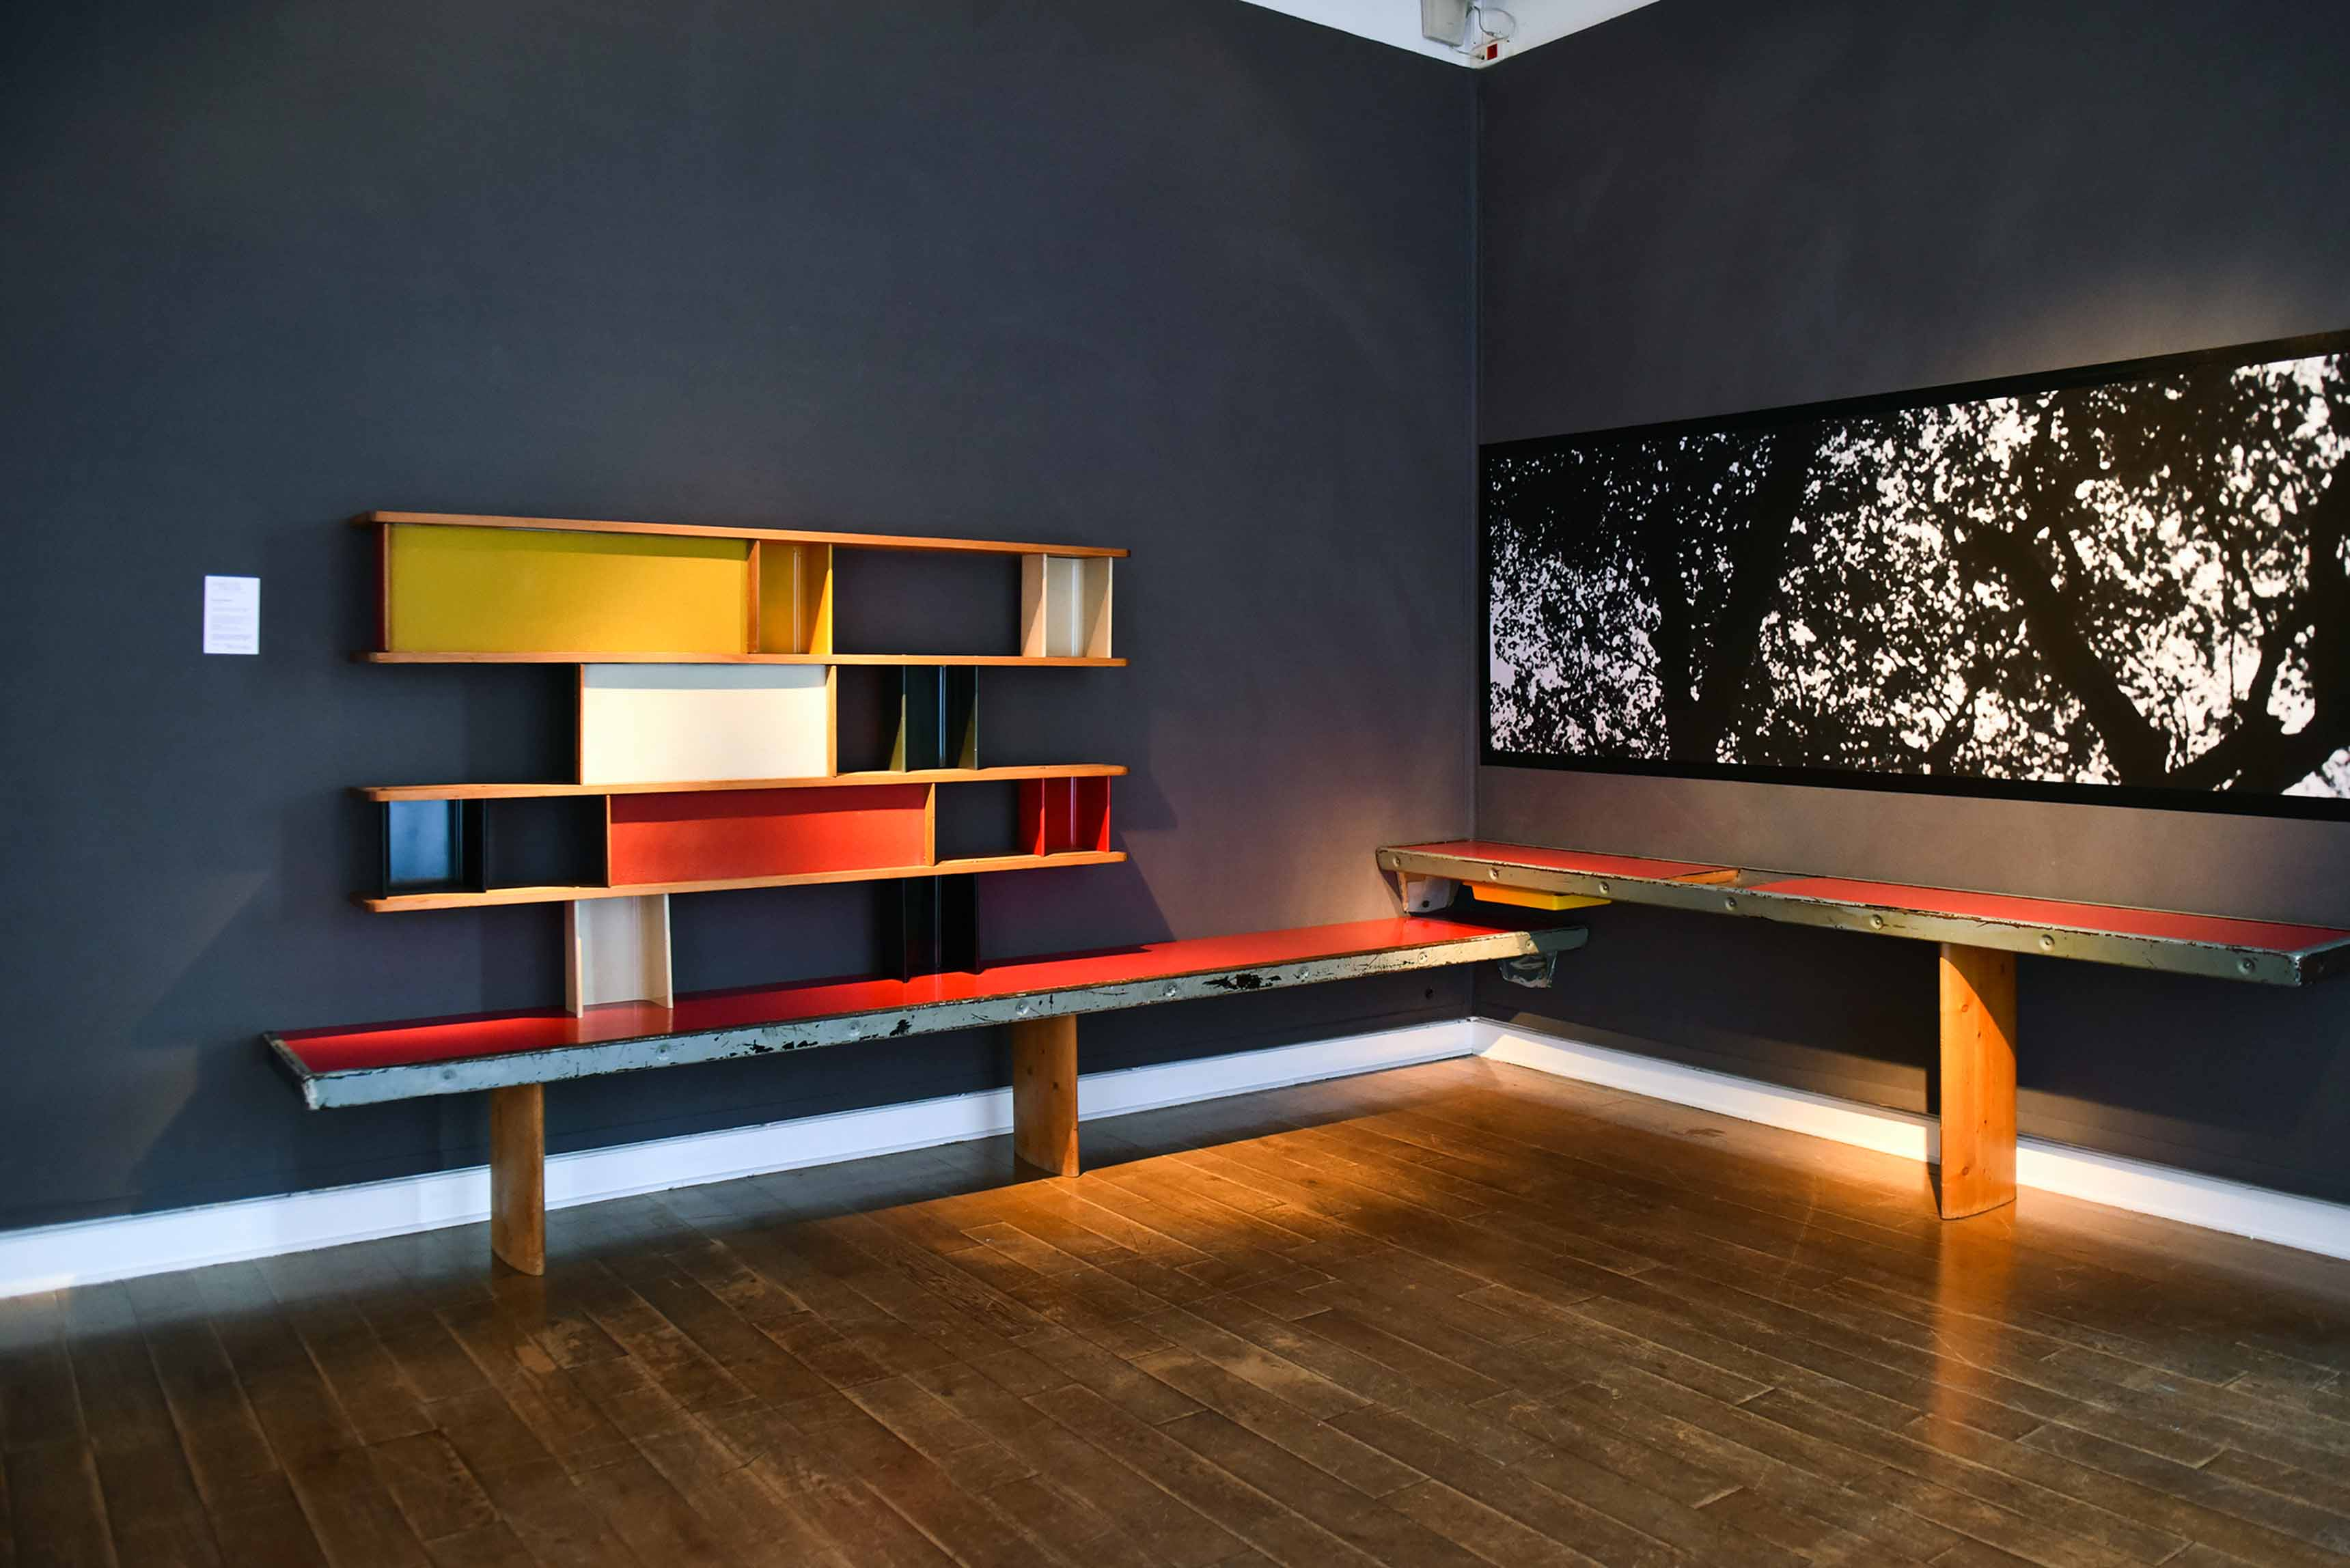 Design, Charlotte for ever, exposition-3- © Artcurial